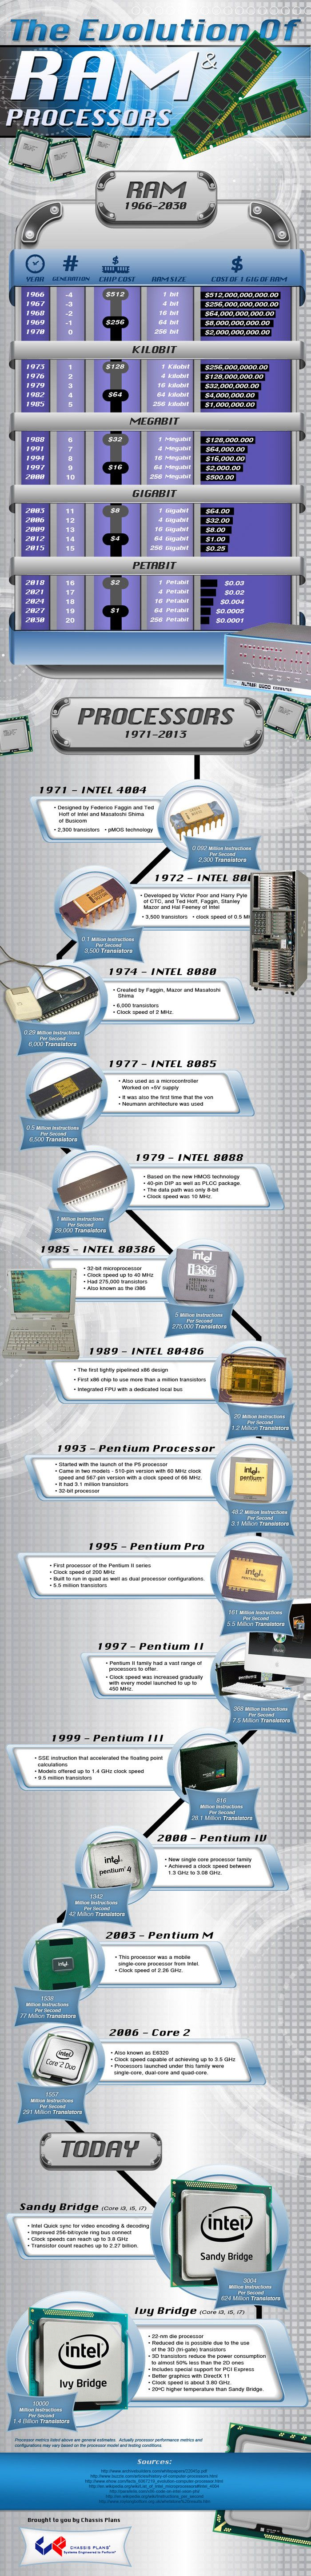 Ram and Processor History [Infographic]